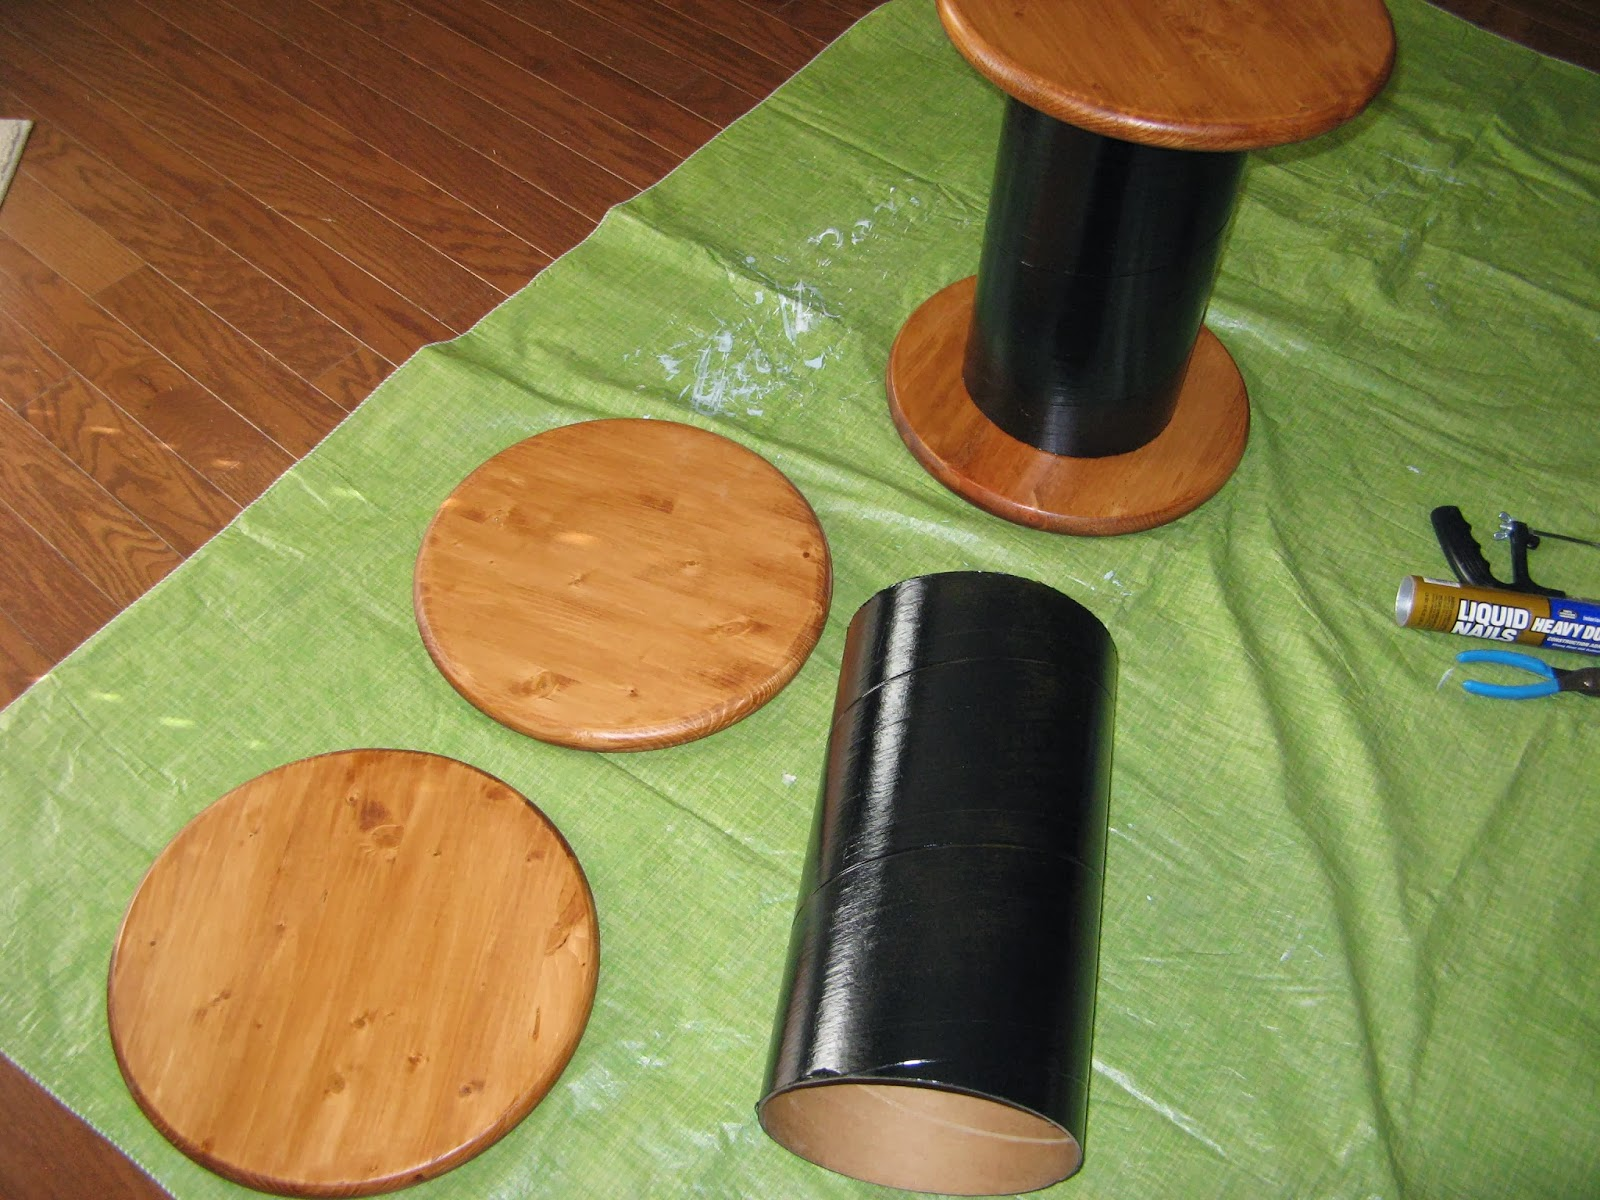 DIY Spool Table - assembly